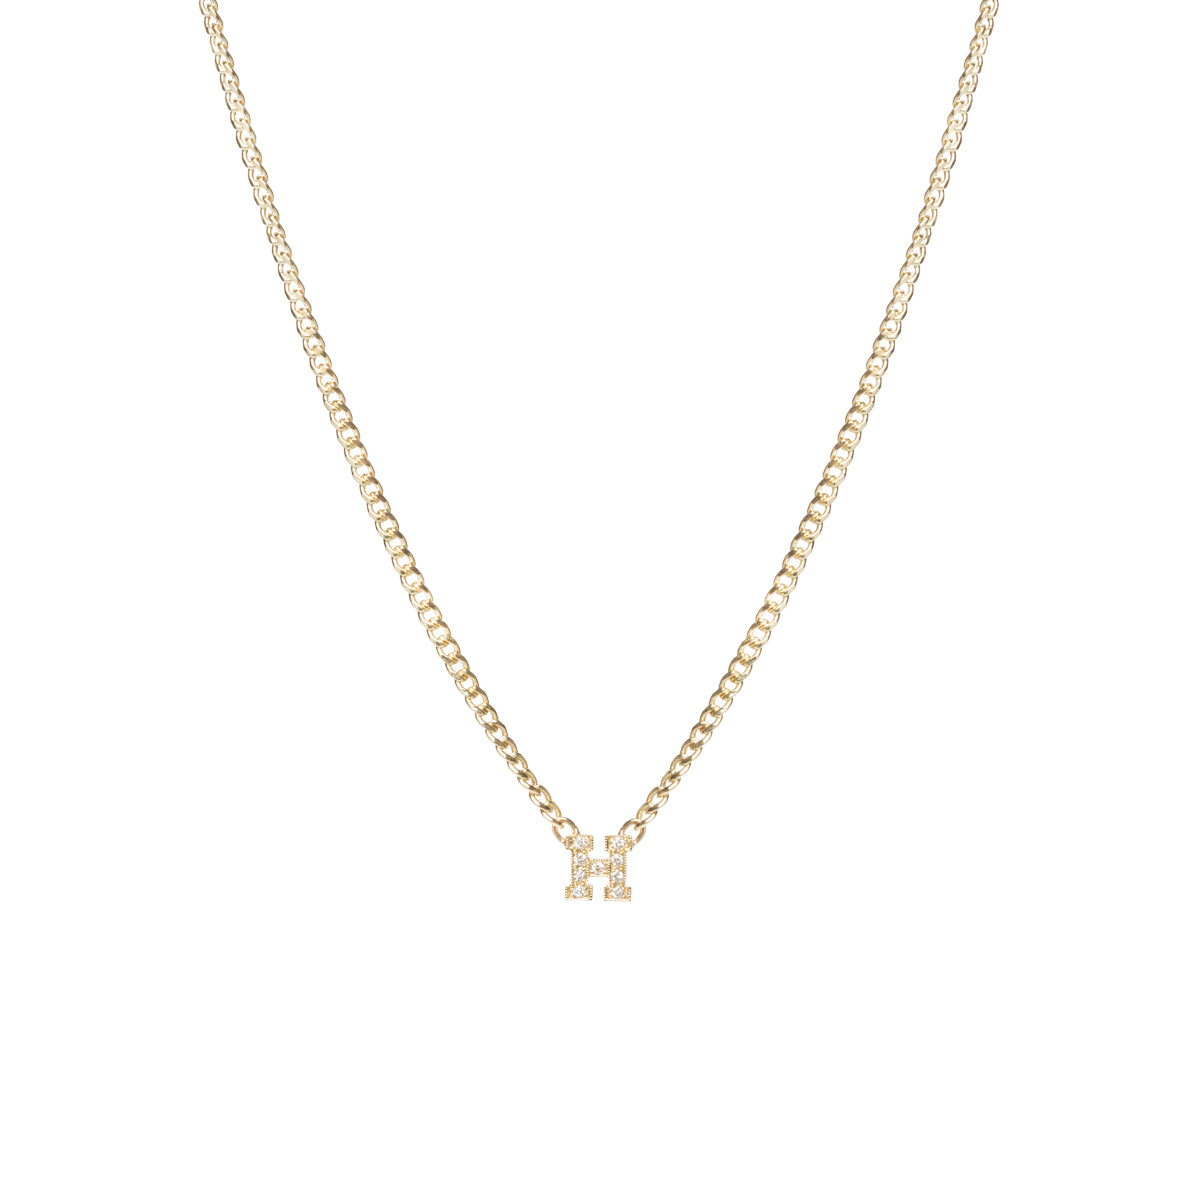 14k pave diamond letter necklace on XS curb chain